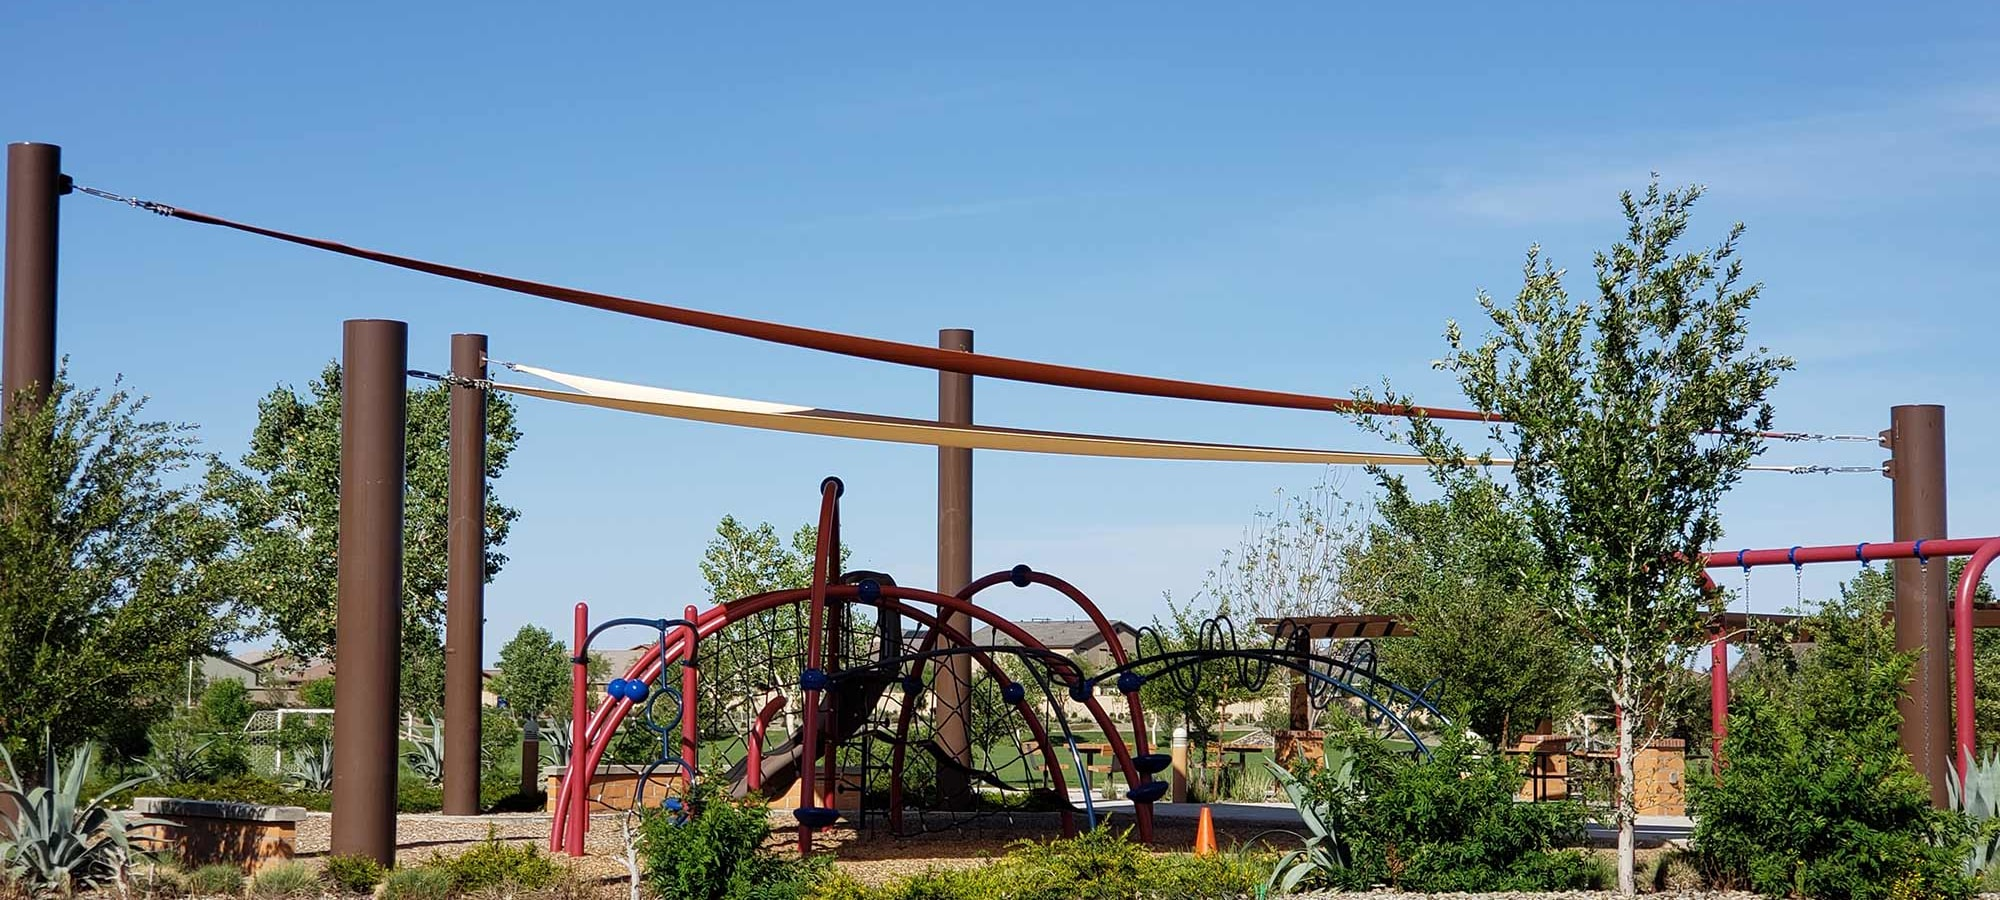 Community Playground at Las Casas at Windrose in Litchfield Park, Arizona